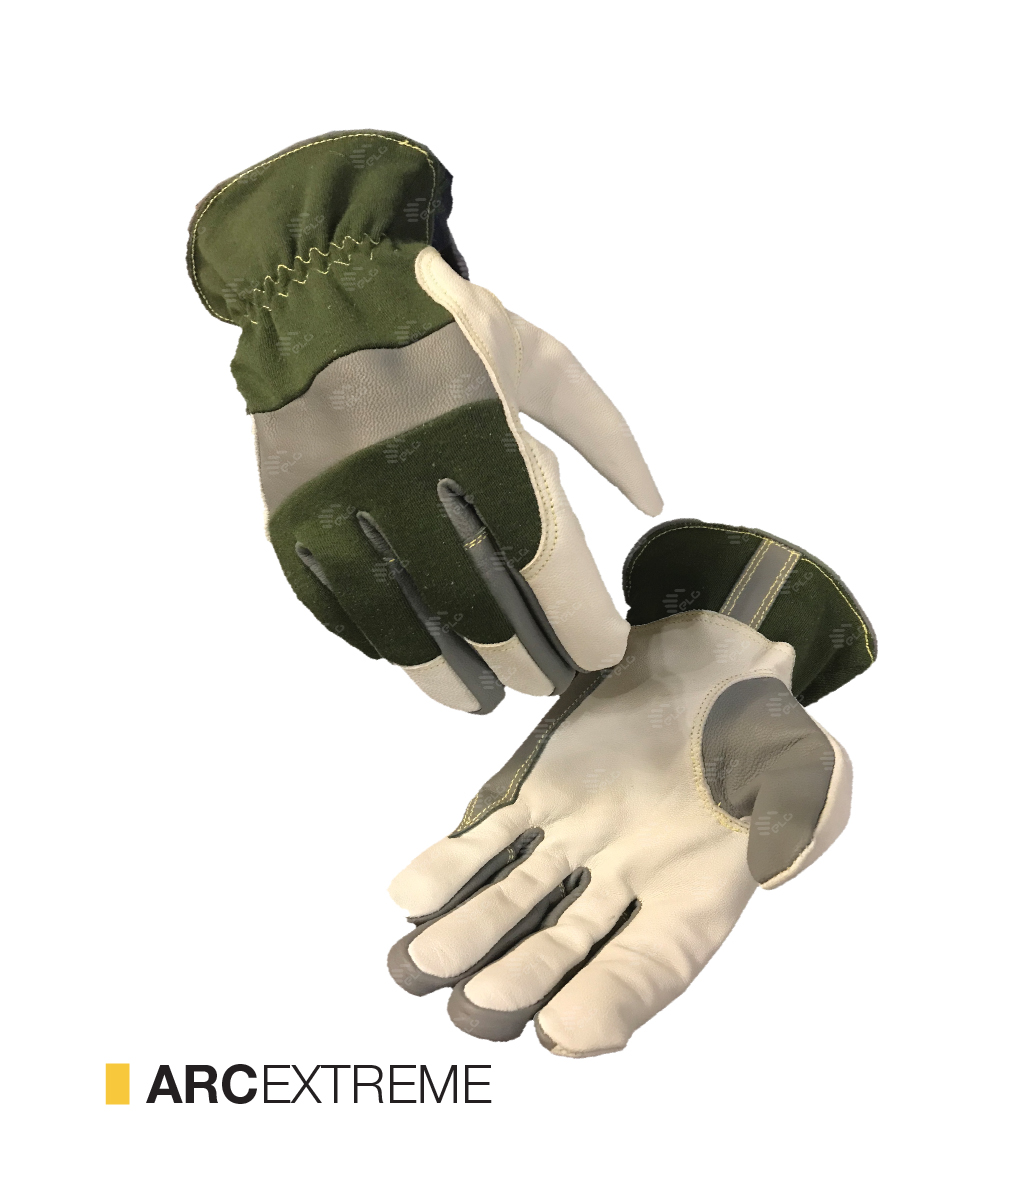 arcextreme cut-resistant gloves by elite leather